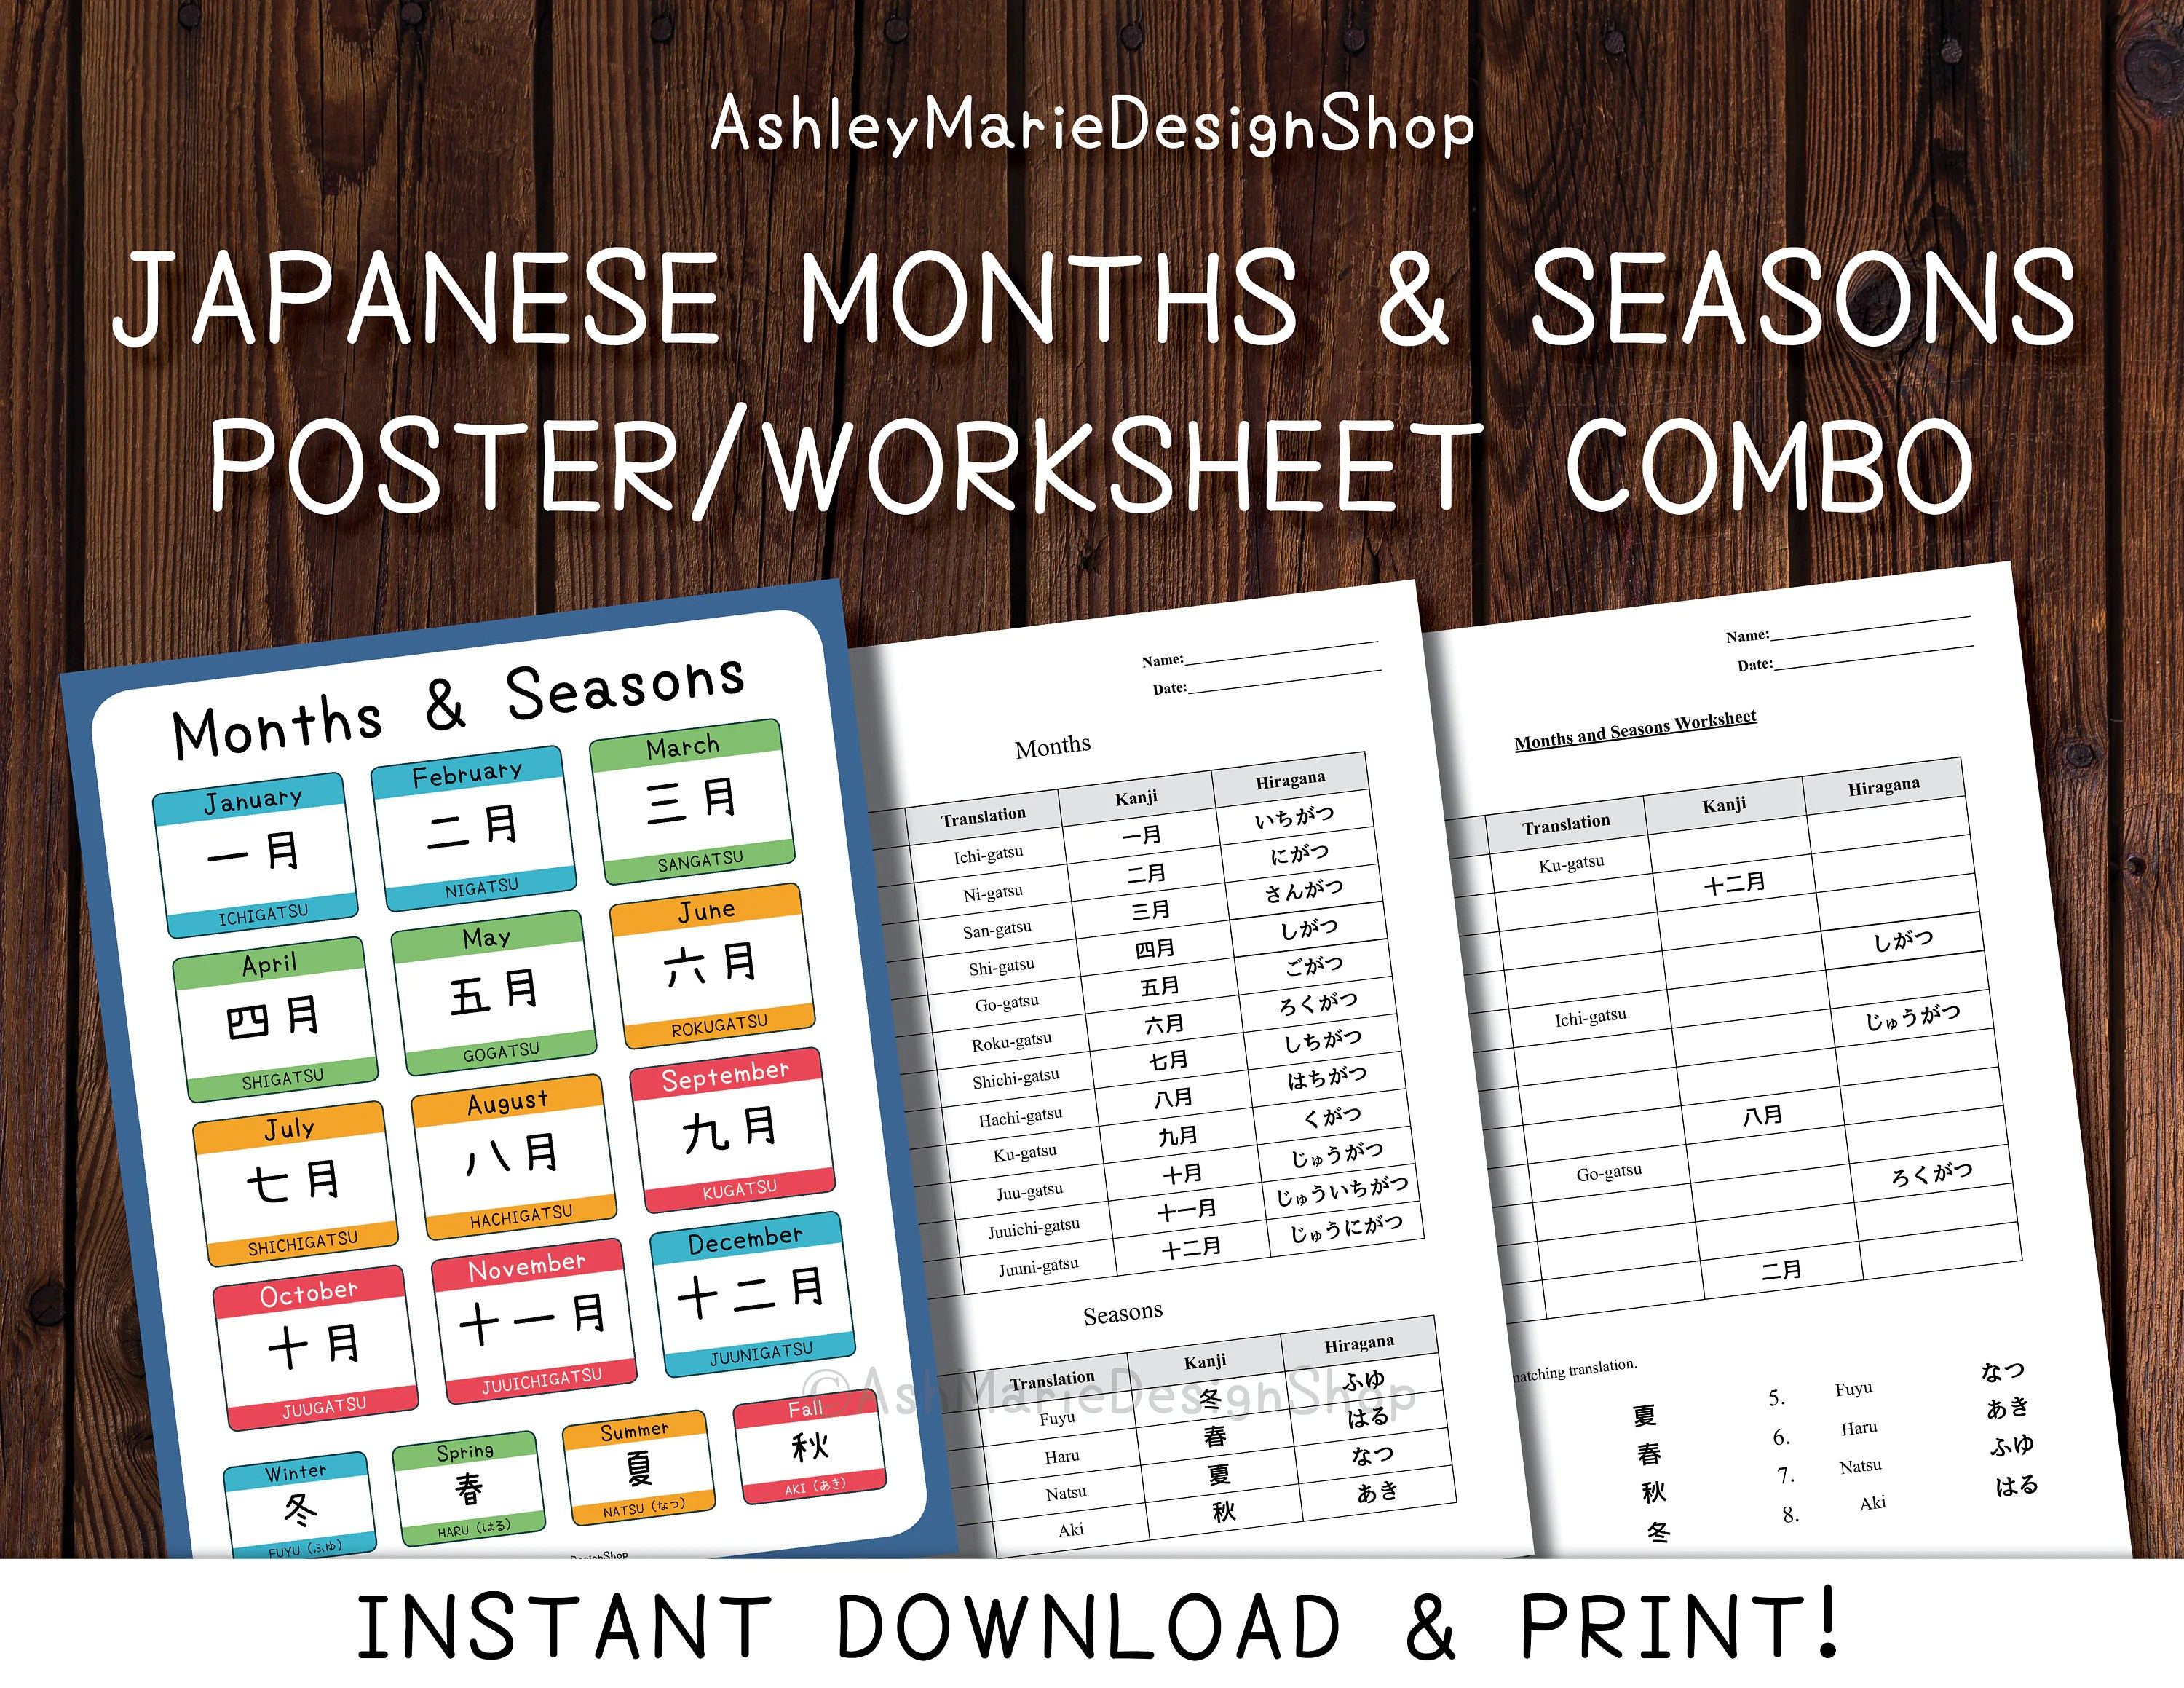 Japanese Months Amp Seasons Poster Worksheet Combo Instant